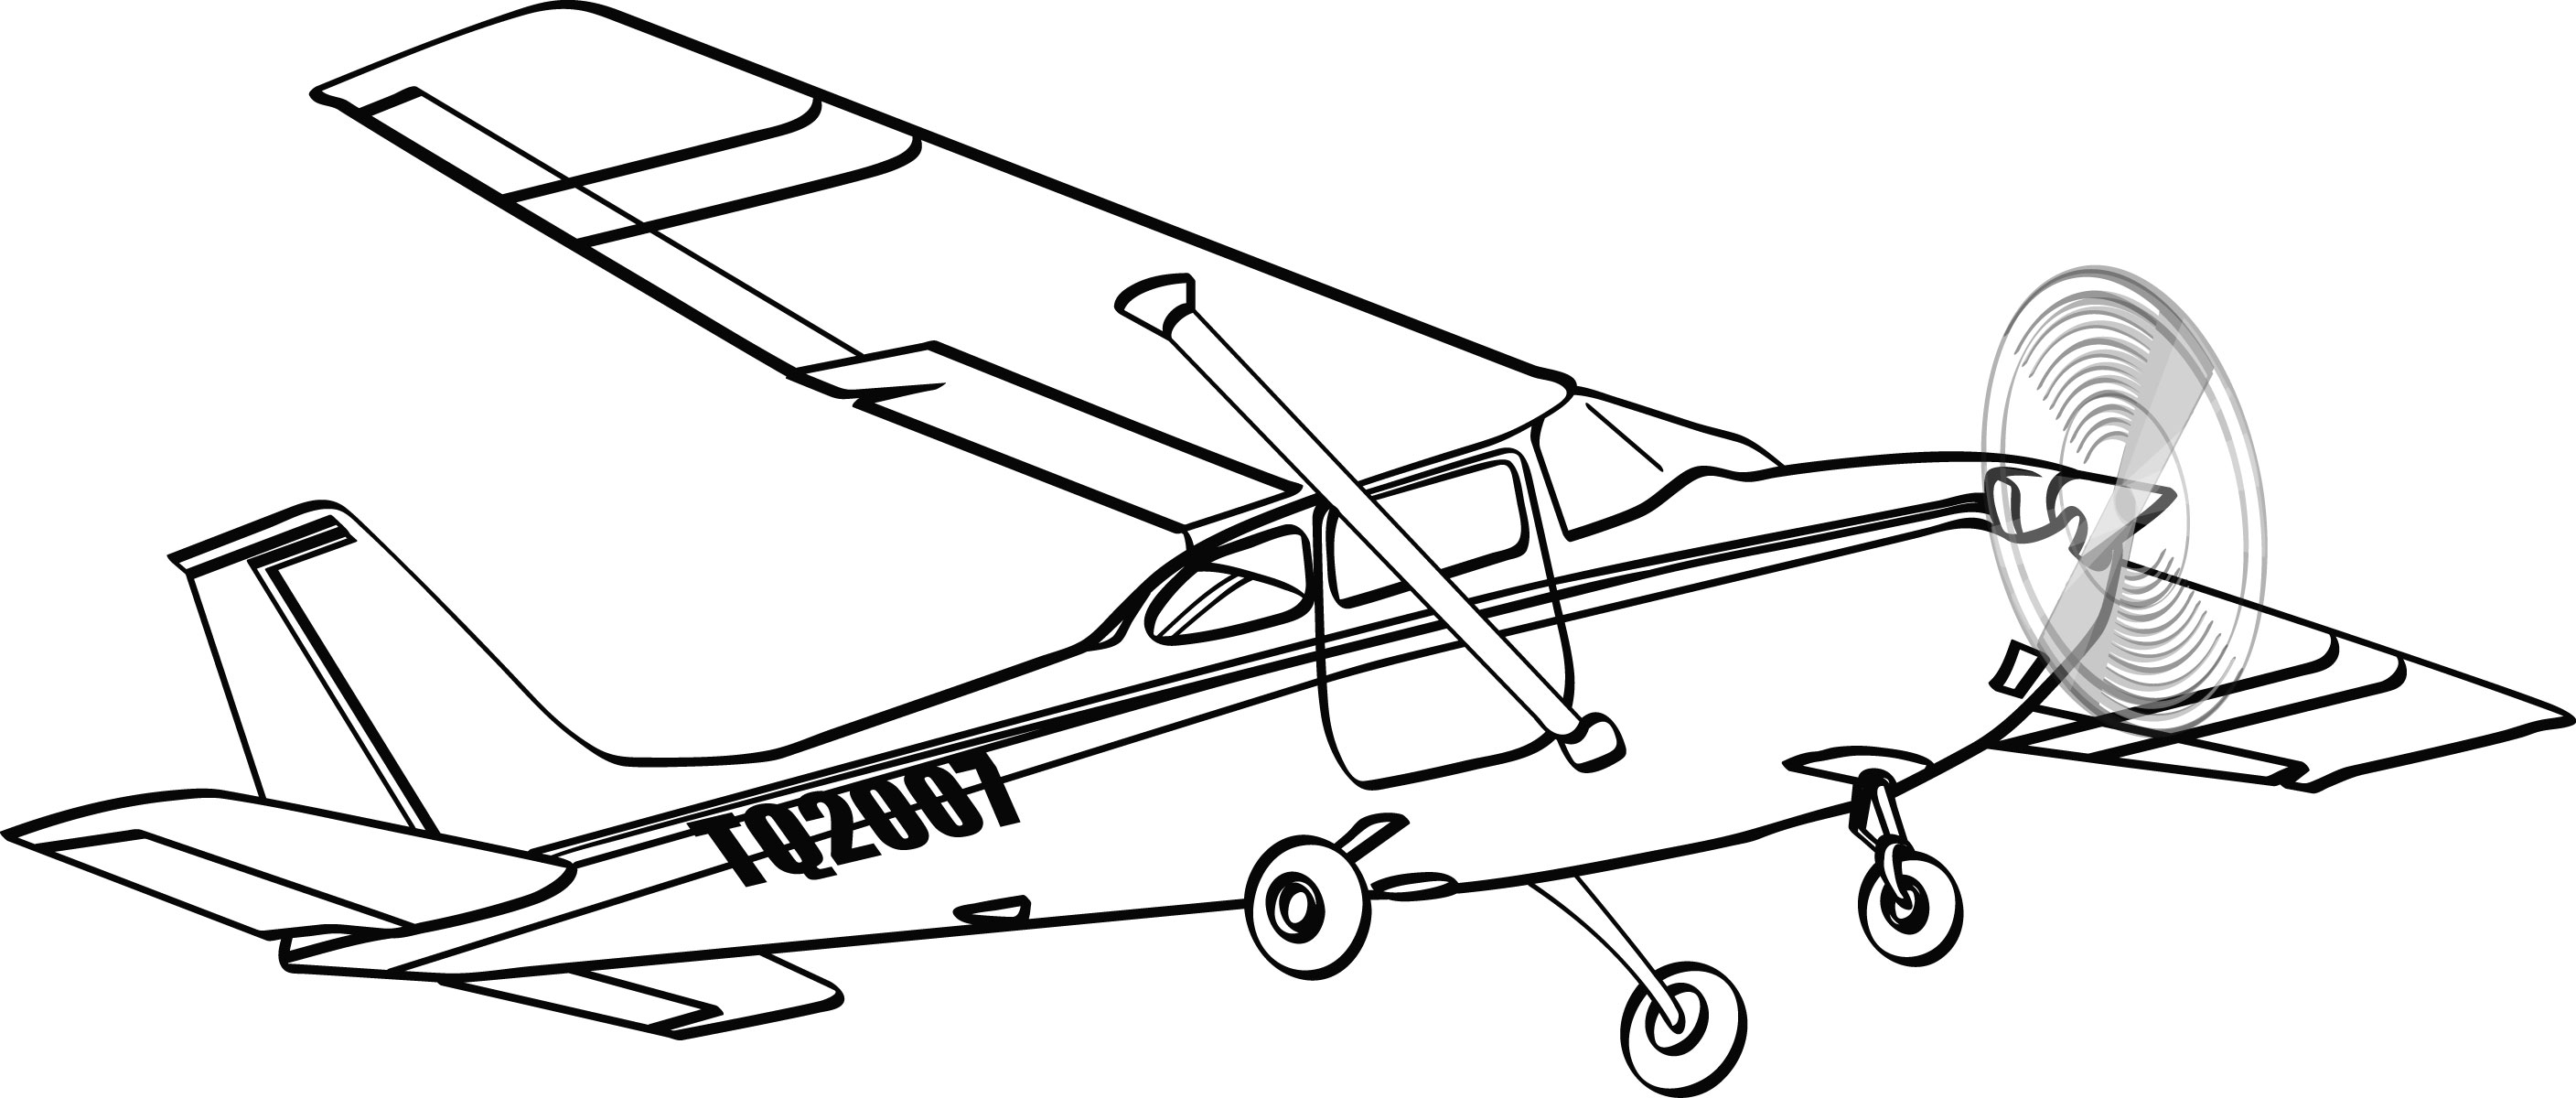 Aircraft clipart cessna airplane Clipart cessna Engine Single (47+)